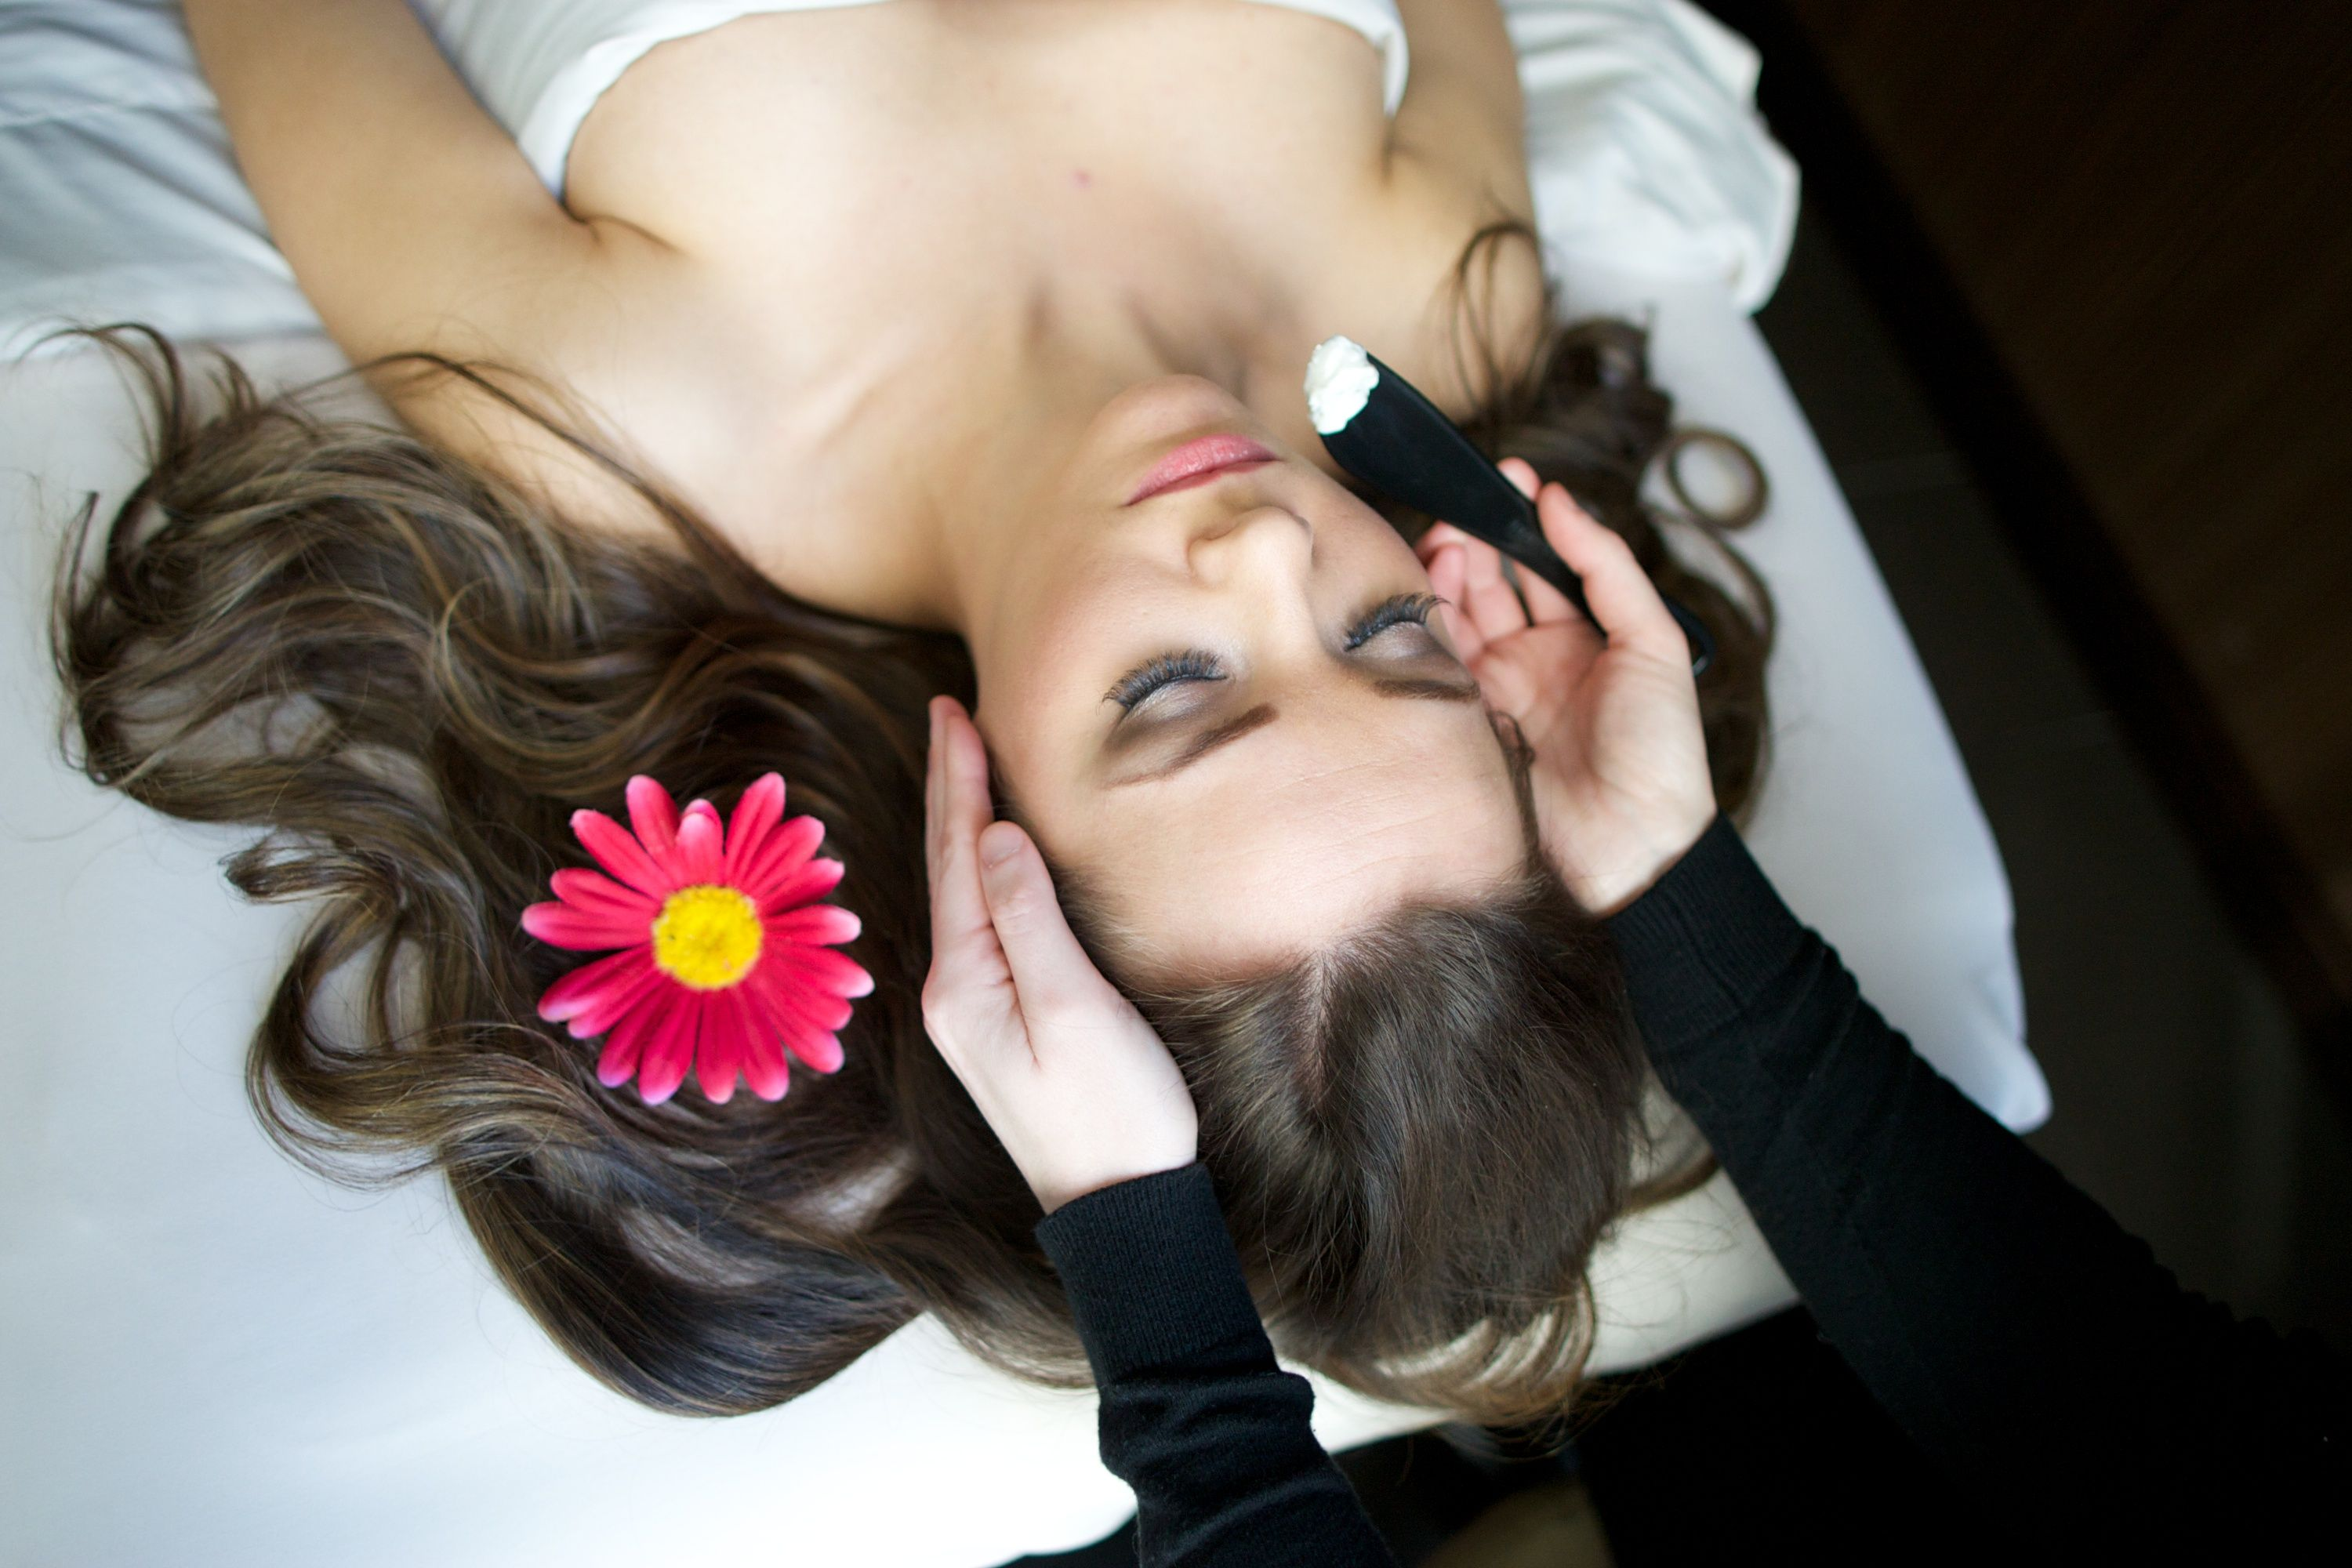 Indulge in our GO GLAM FACIAL - currently listed on our September Spa specials. This deep and firming facial is topped off with an eye, lip and decollette treatment along with a sugar scrub for hands and arms. It will definitely leave you glowing and feeling glamorous. visit us at spaatthewit.com